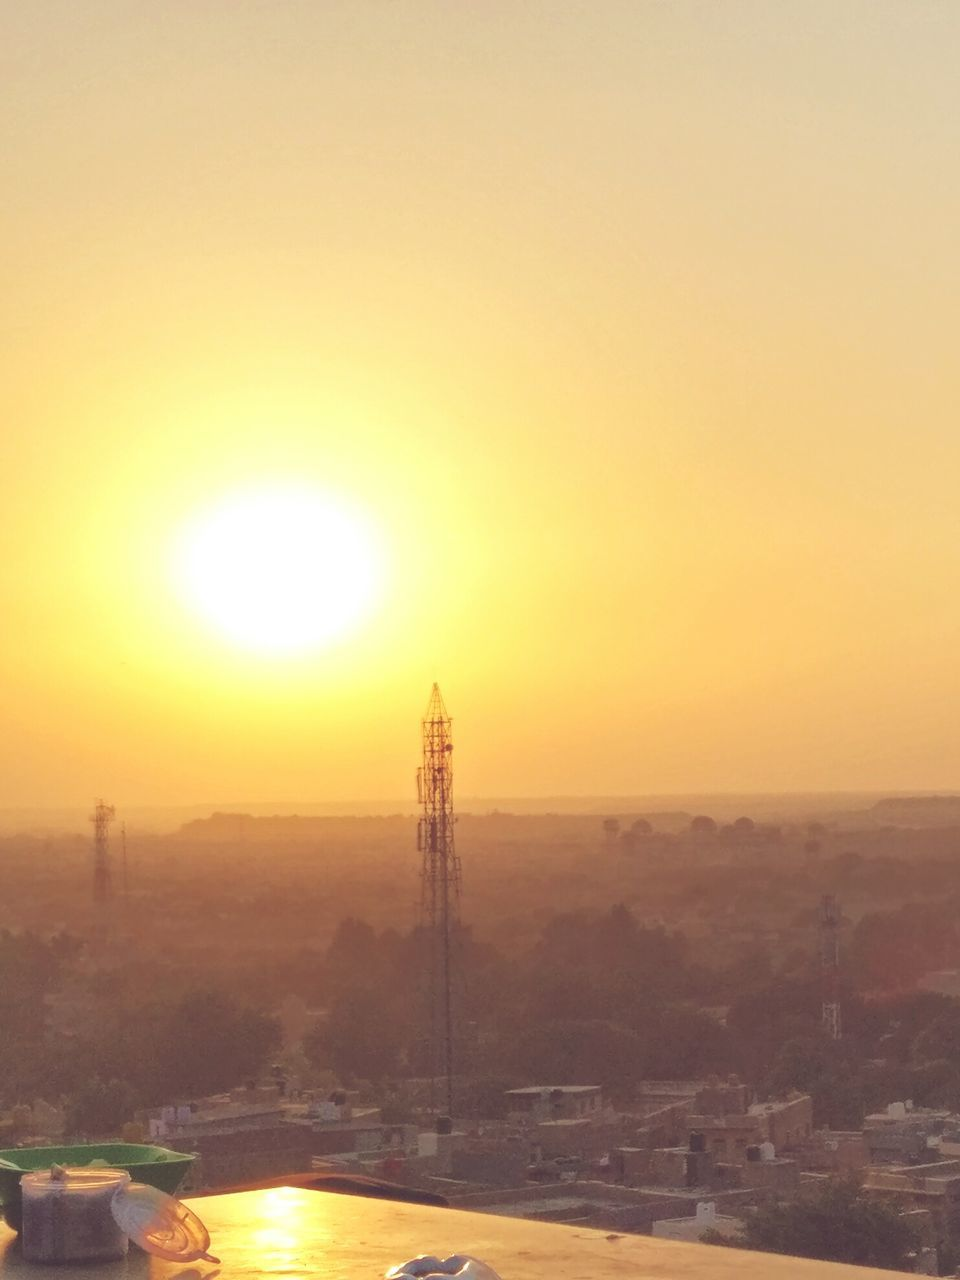 sun, sunset, orange color, electricity pylon, sunlight, built structure, no people, scenics, nature, outdoors, sky, beauty in nature, architecture, building exterior, clear sky, city, day